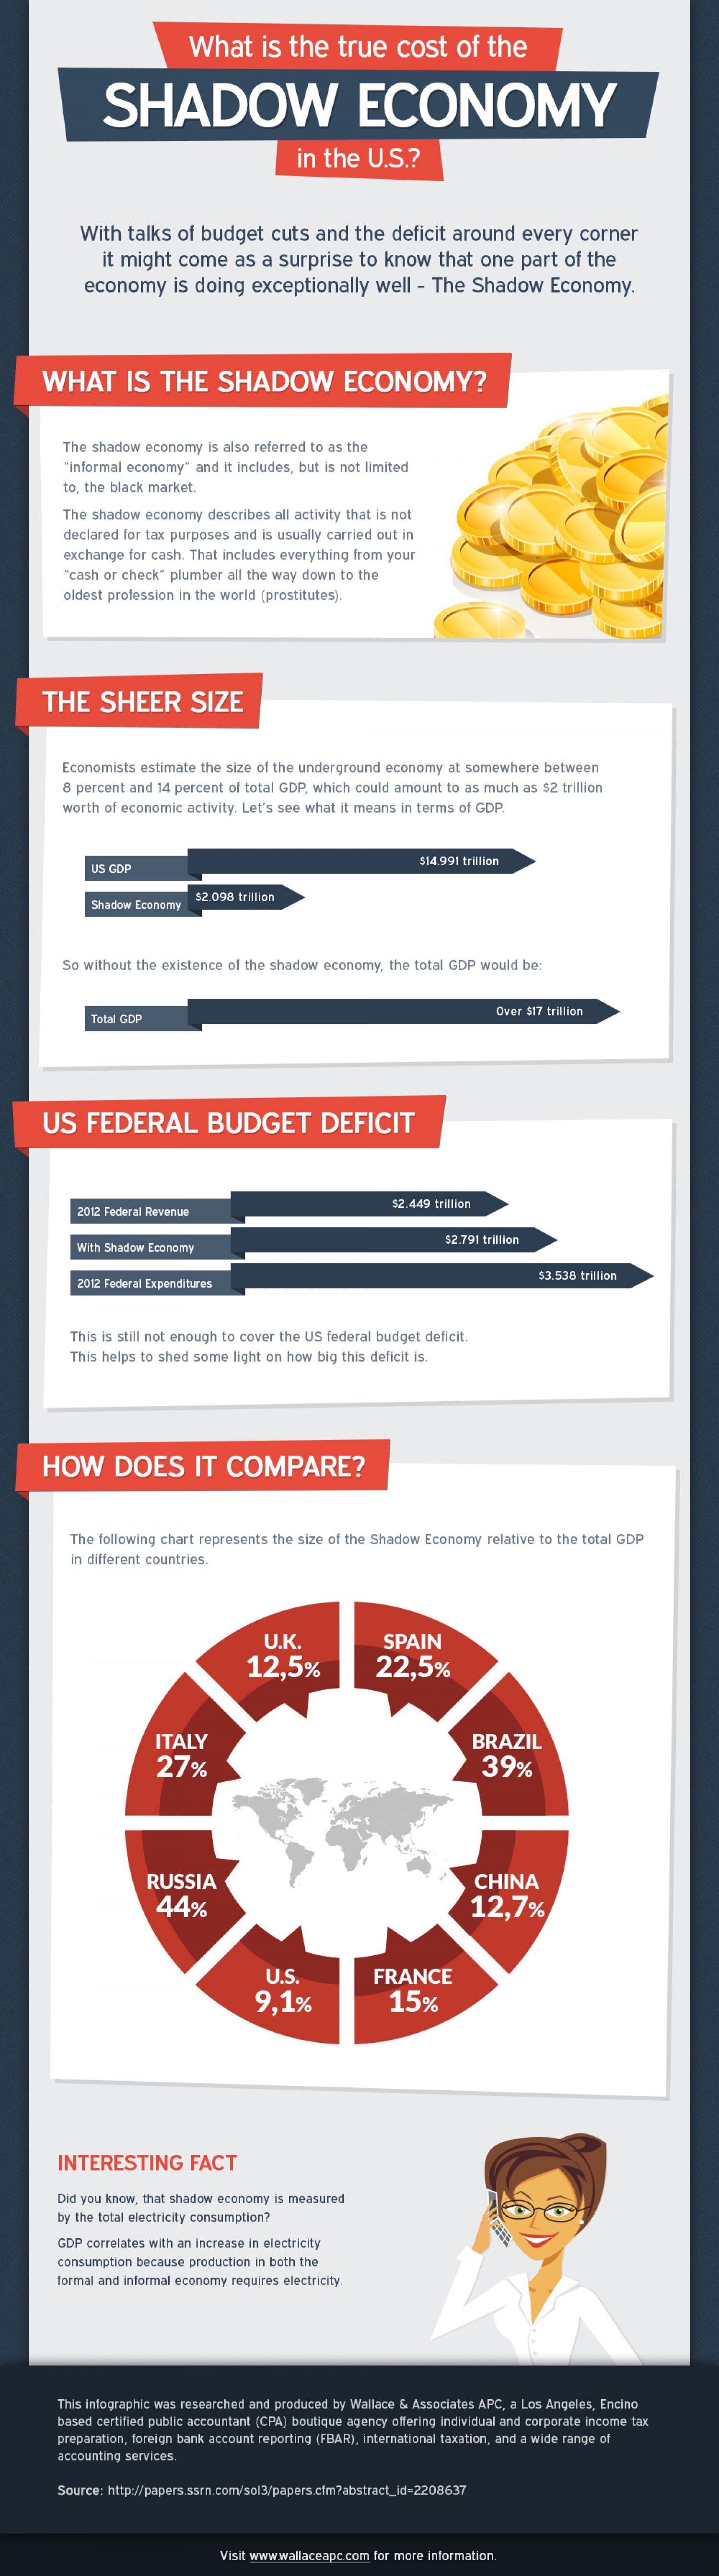 What is the true cost of the shadow economy in the U.S.? Infographic